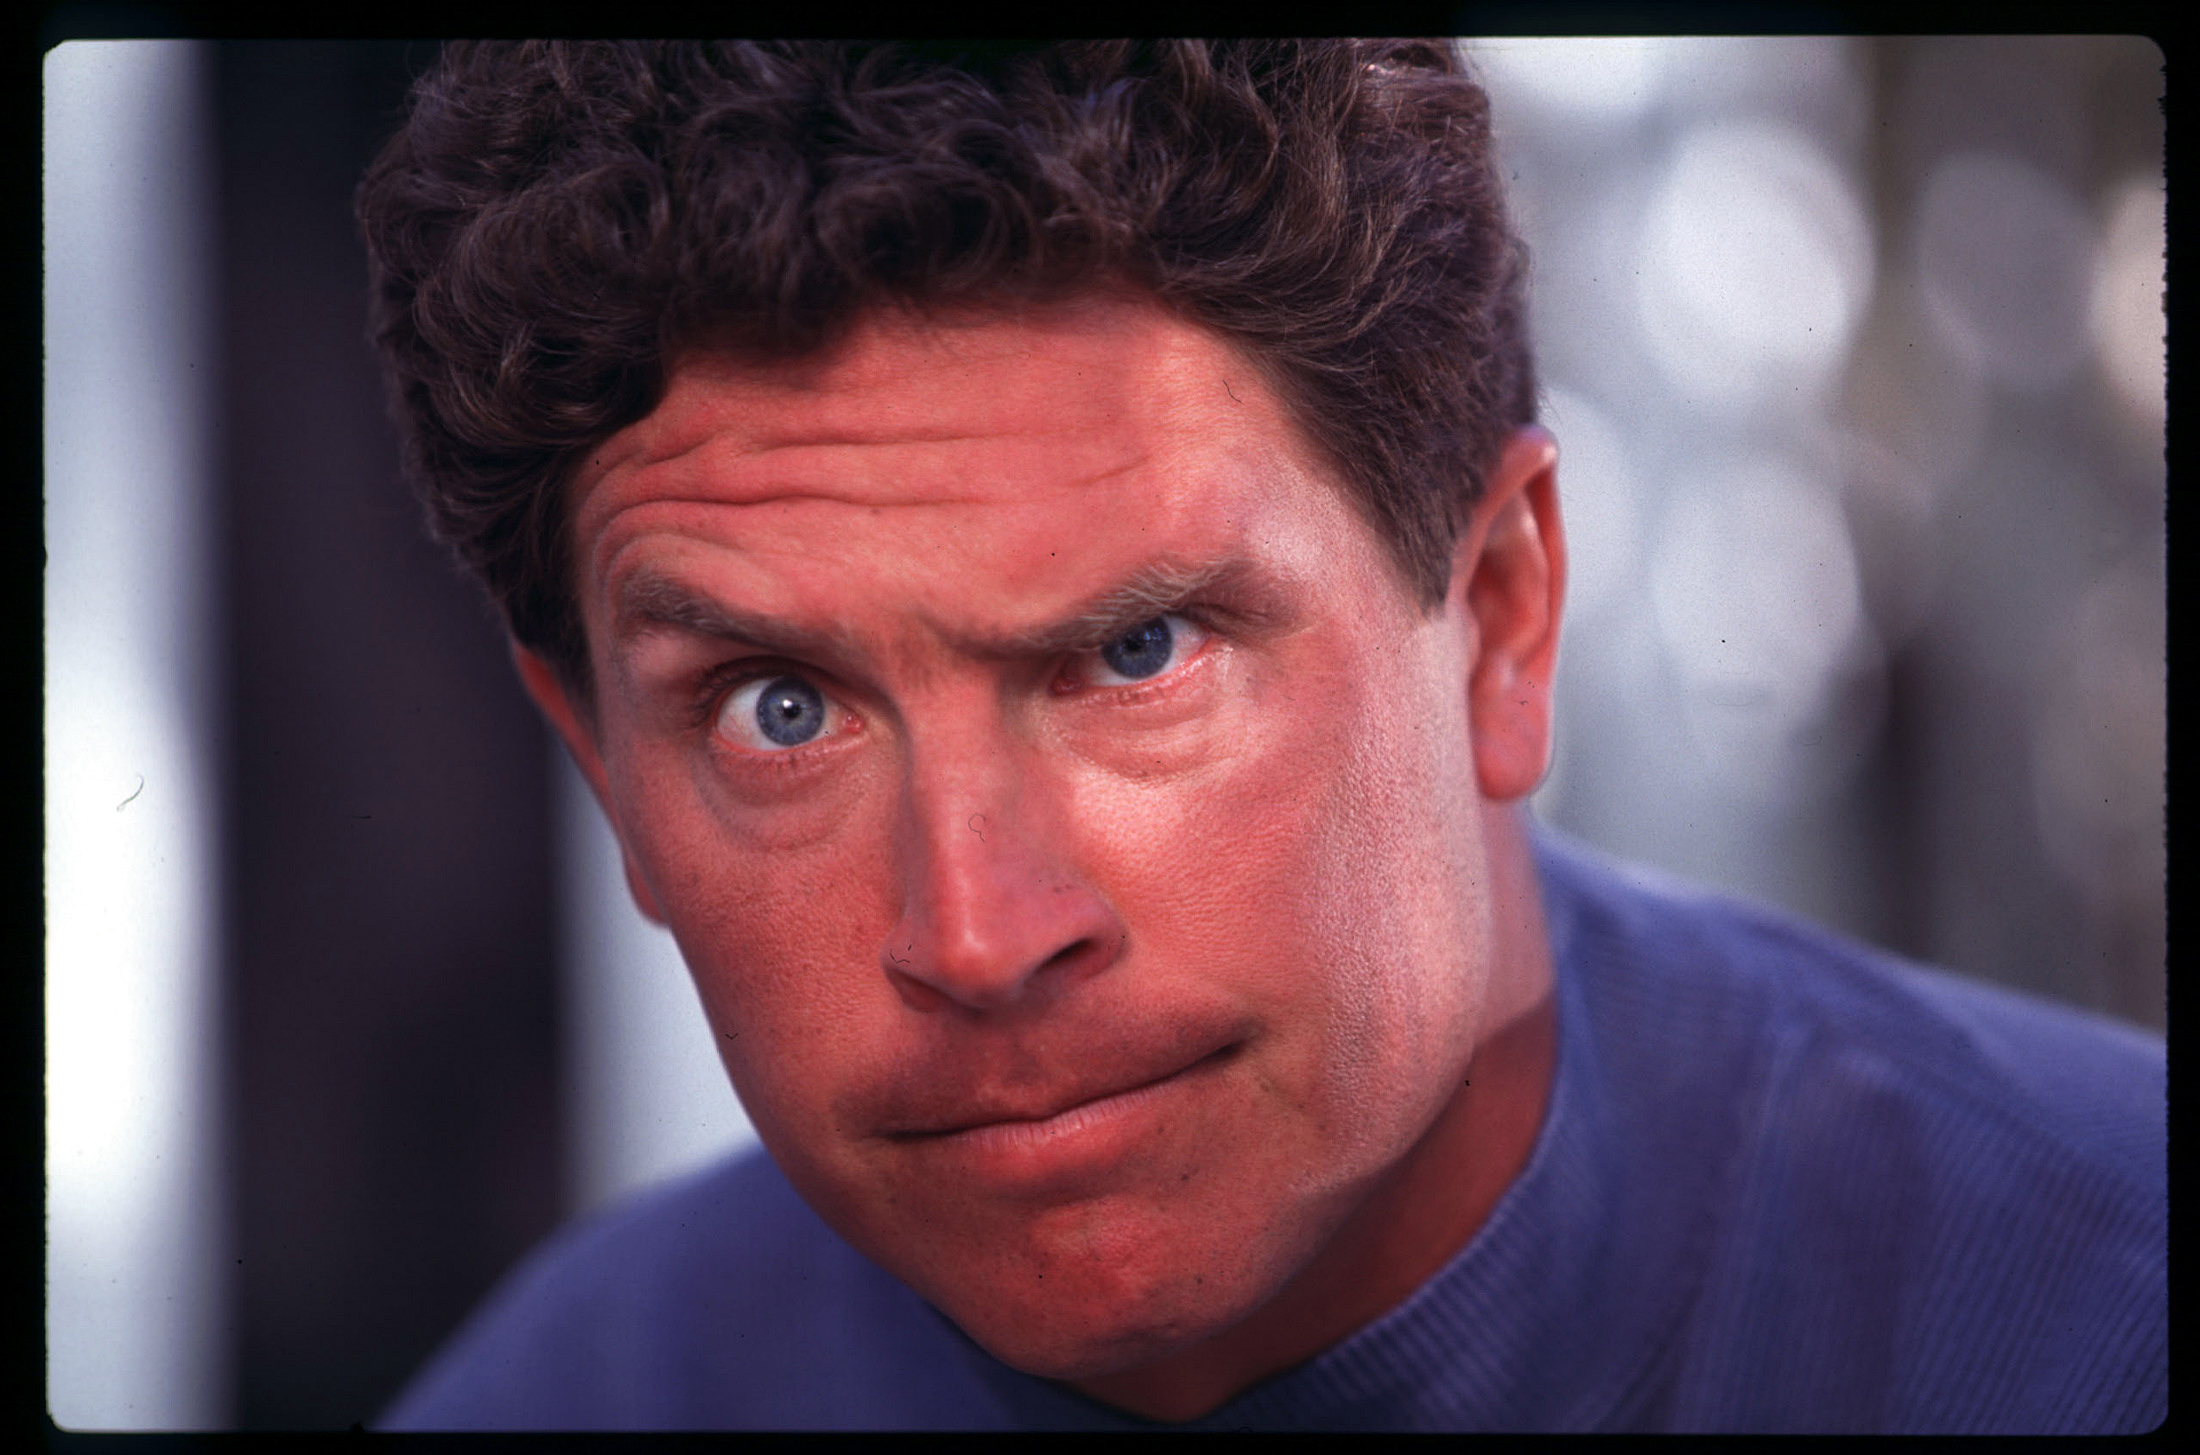 Donna Savattere Affair With Dan Marino Resulted in Secret Love Child ...